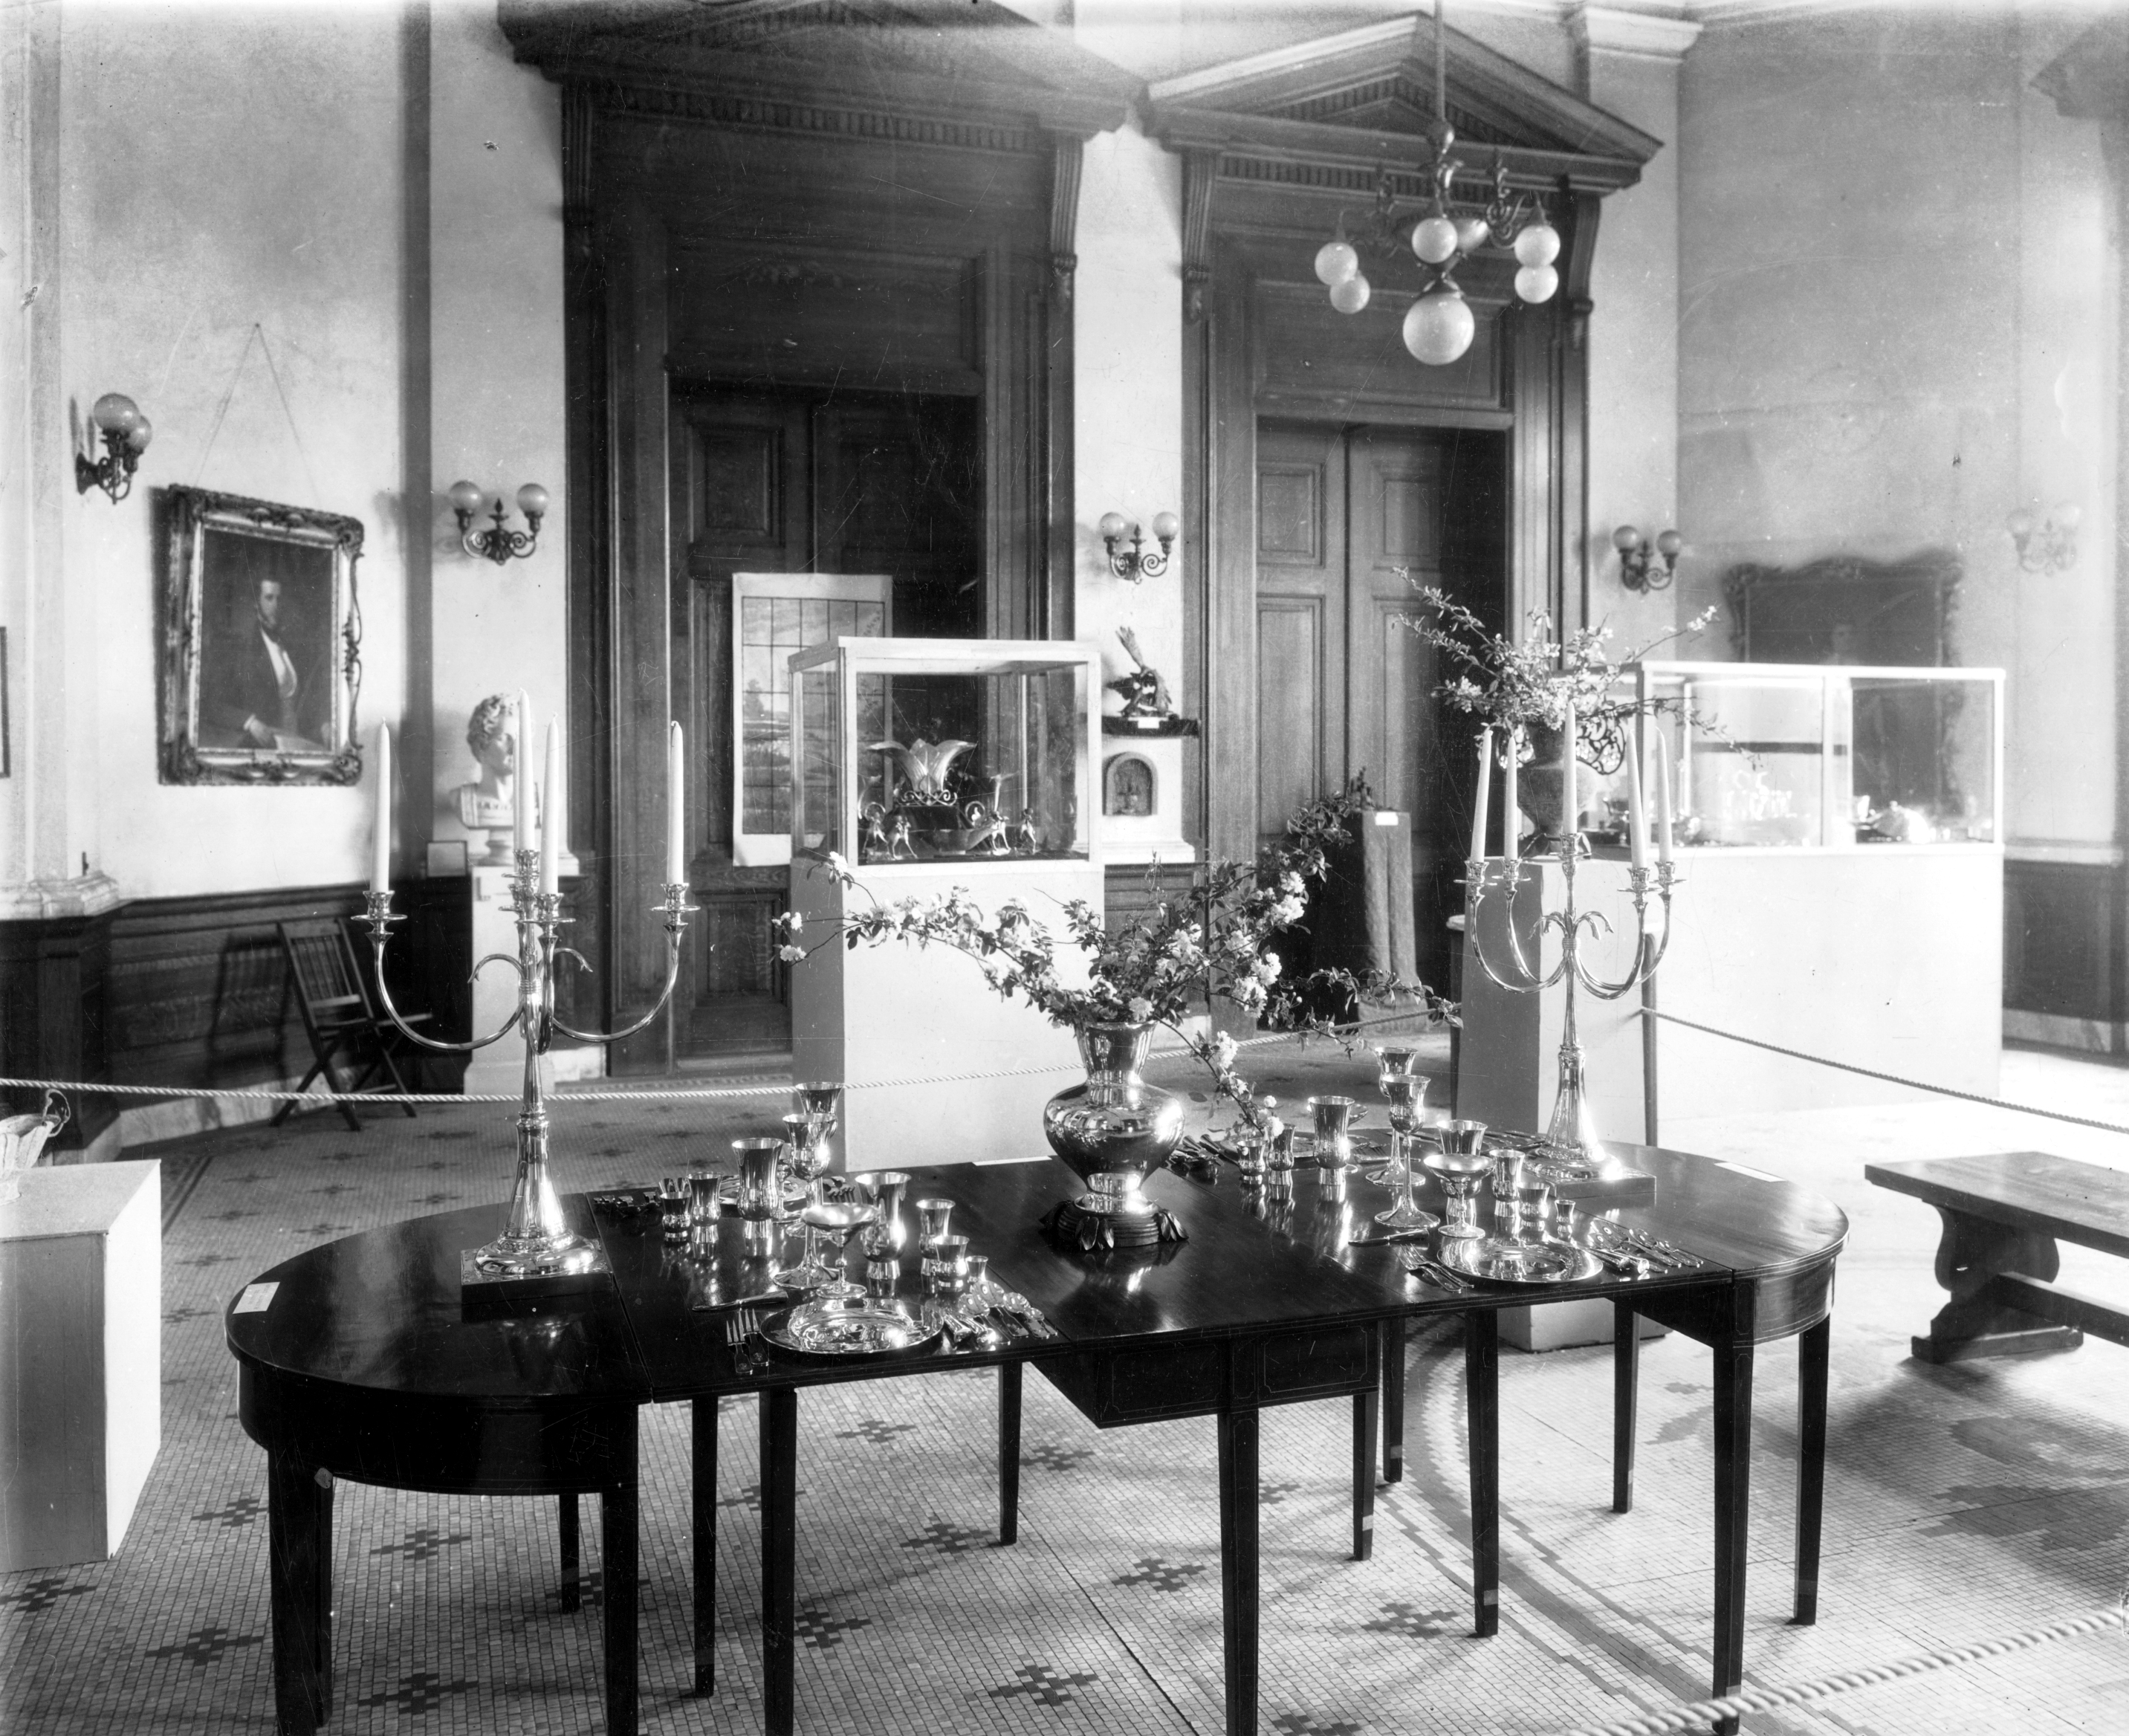 Rotunda Gallery, 1935